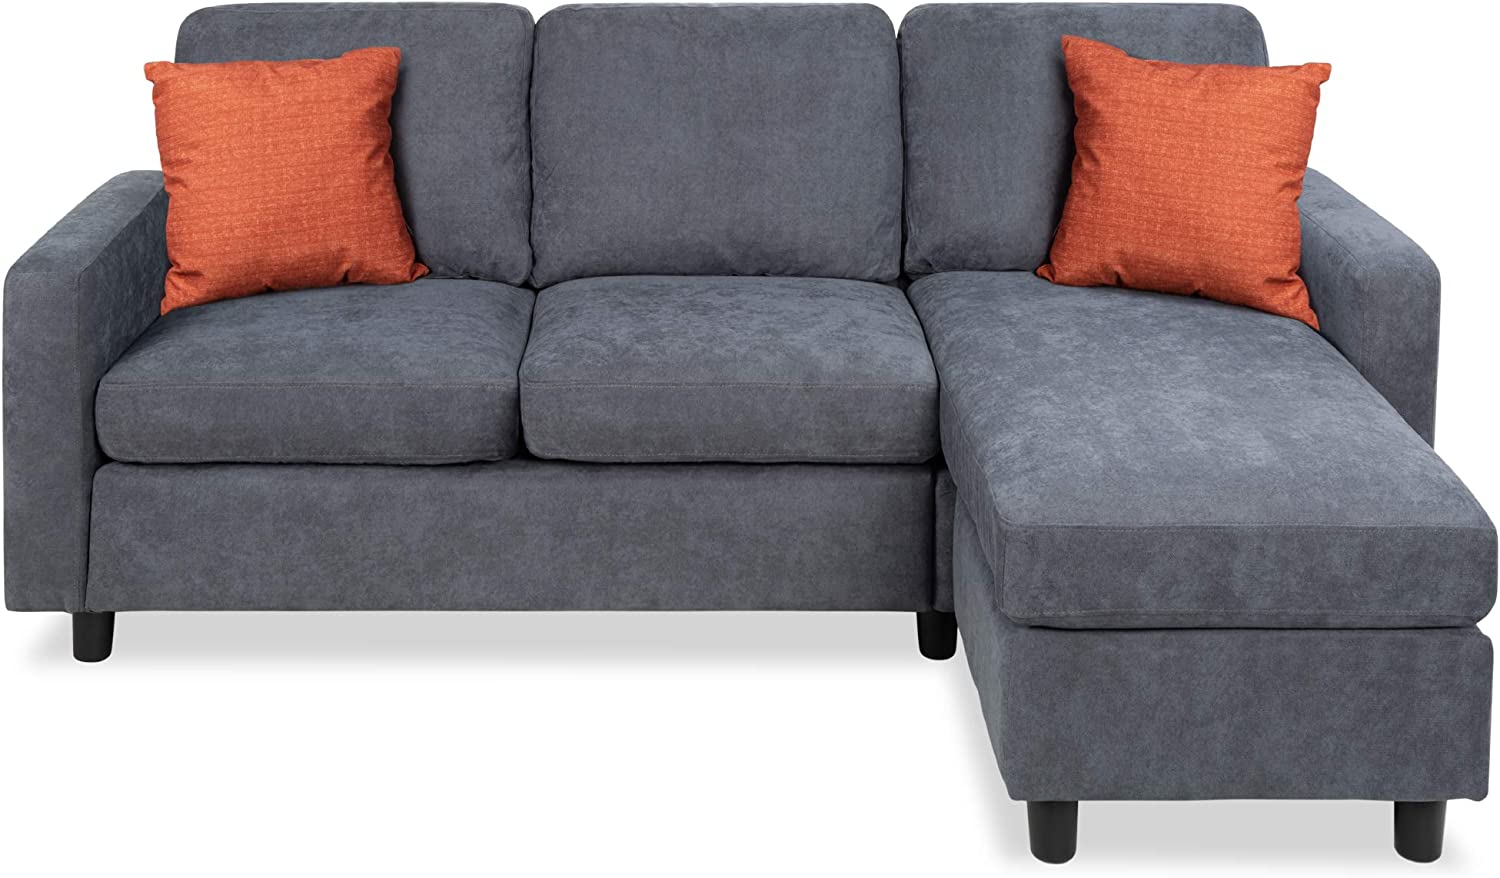 Best Choice Products Linen Sectional Sofa for Home, Apartment, Dorm, Bonus Room, Compact Spaces w/Chaise Lounge, 3-Seat, L-Shape Design, Reversible Ottoman Bench, 680lb Capacity - Blue/Gray